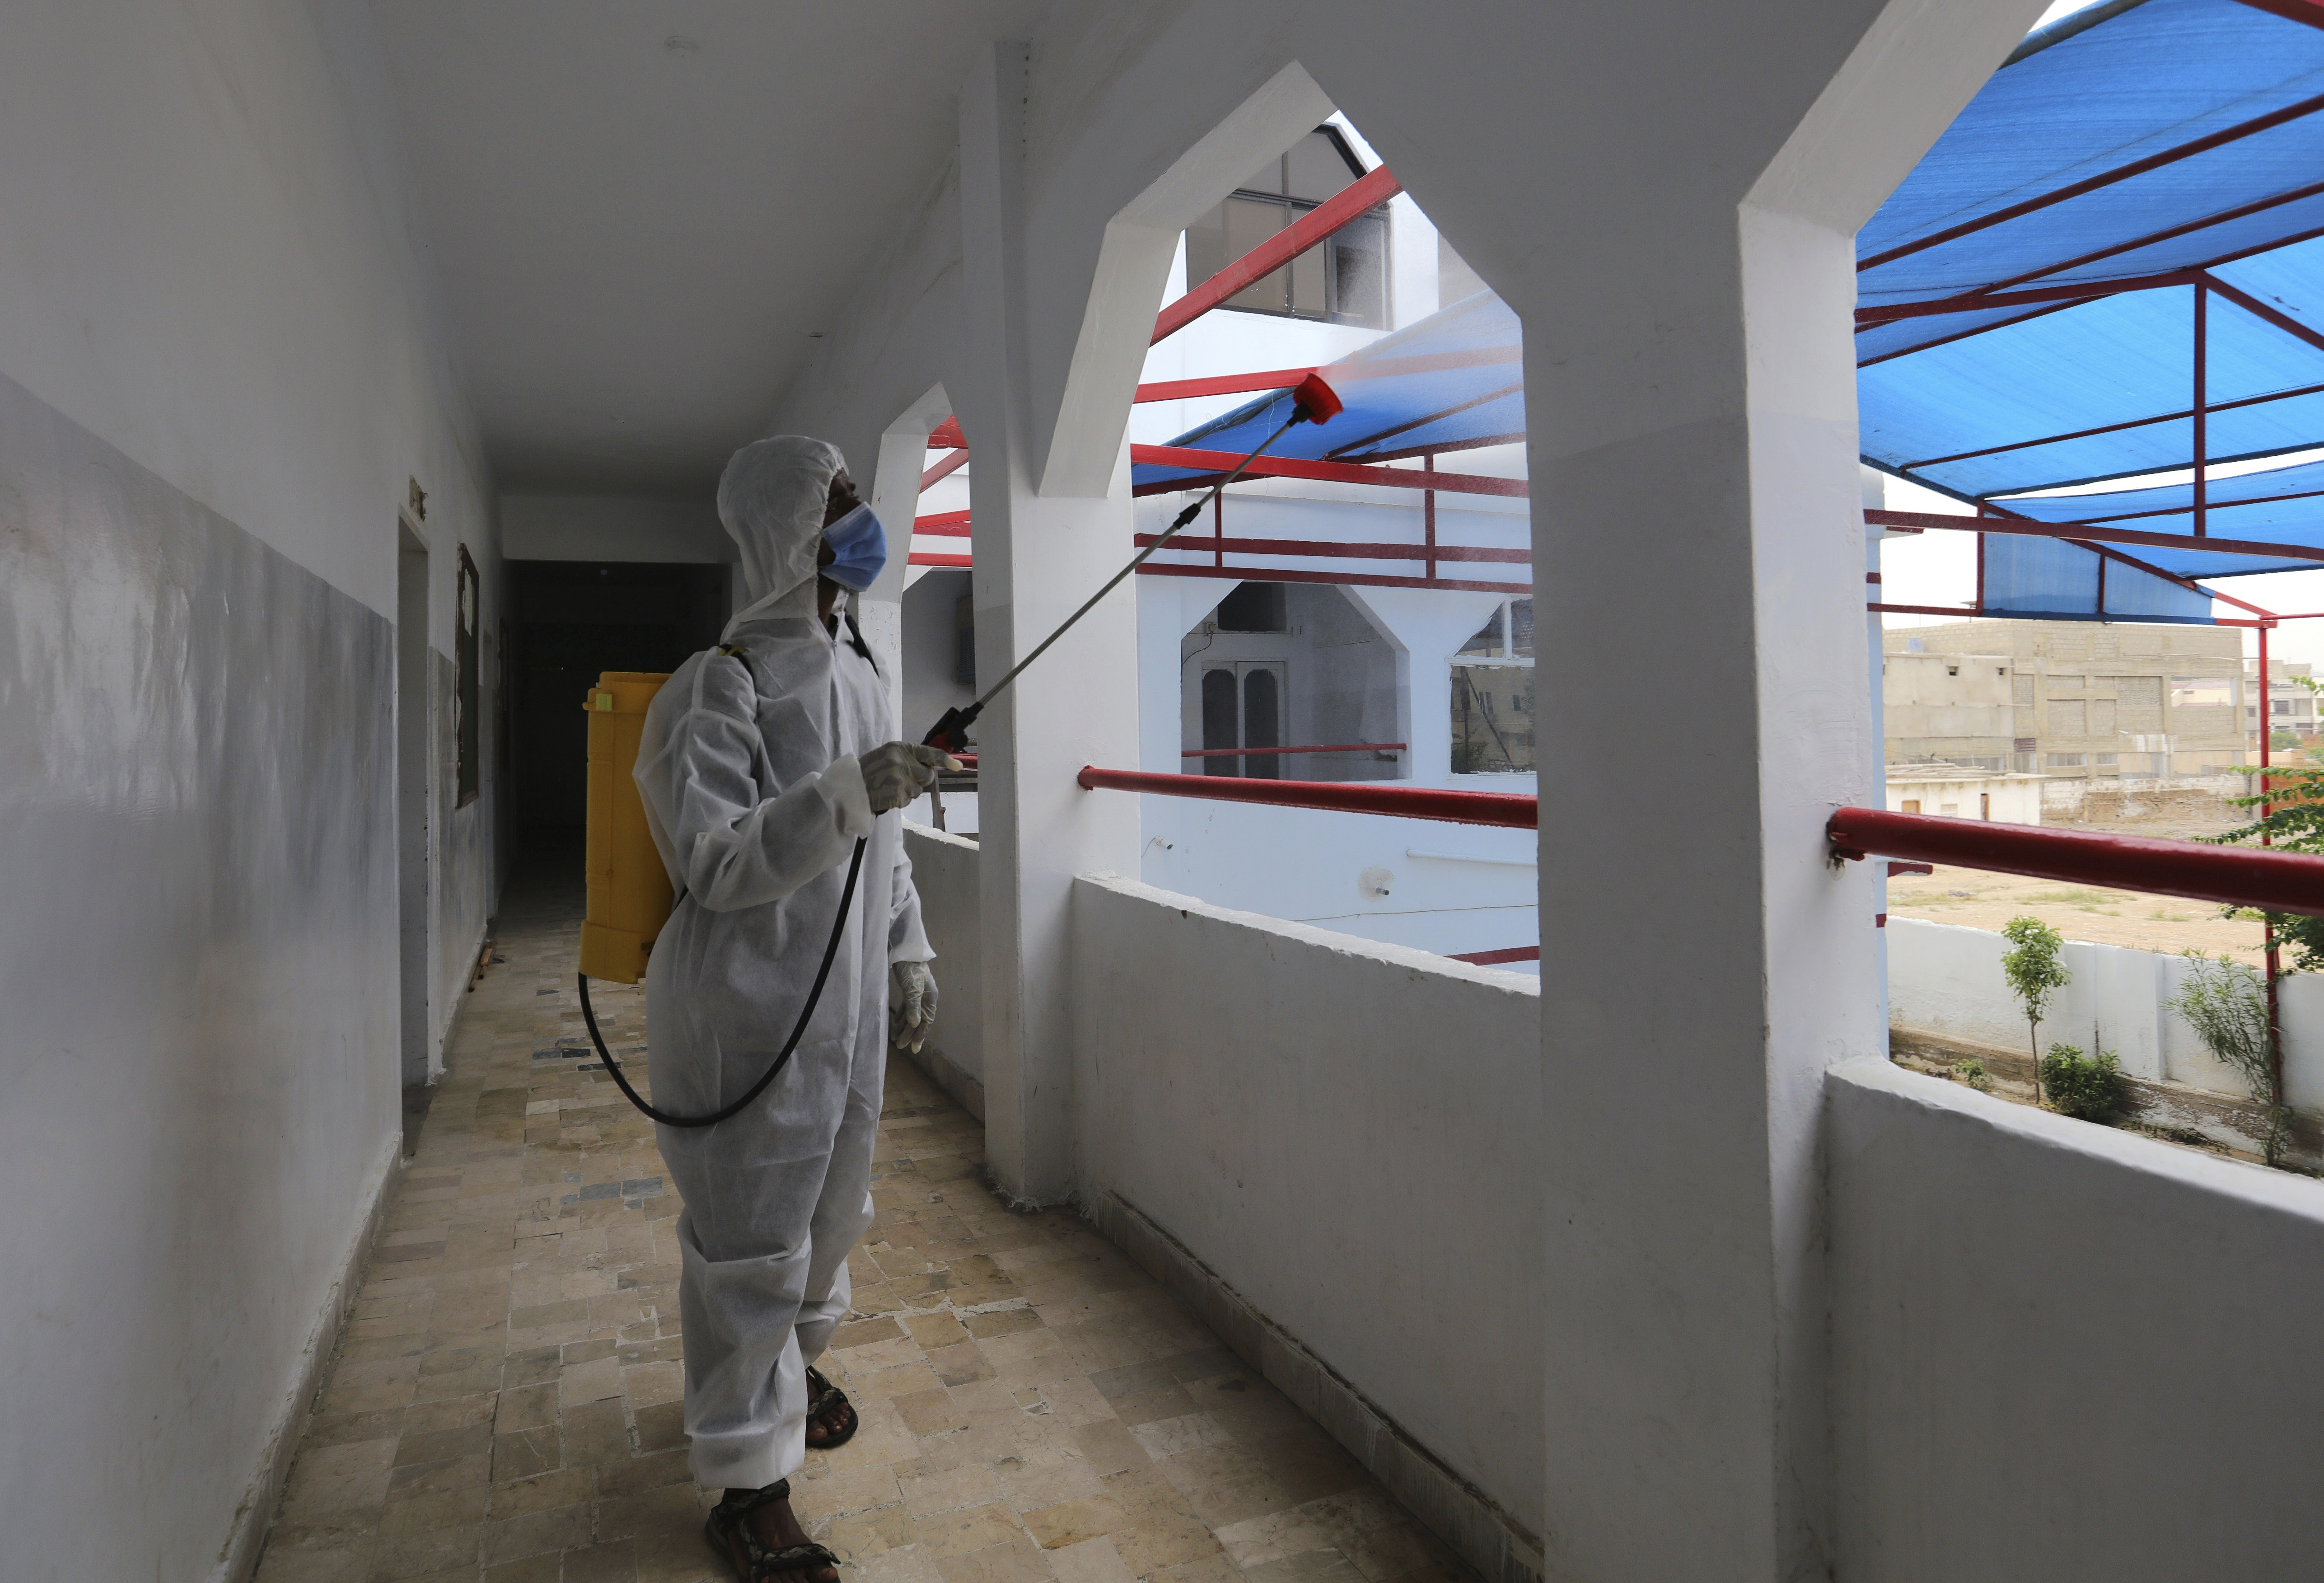 A worker sprays disinfectant in a school as preparation for reopening of educational institutions that were closed in March are finalized, in Karachi, Pakistan, Monday, Sept. 14, 2020. Education officials in Pakistan say authorities will start reopening educational institutions from Sept. 15 amid a steady decline in coronavirus deaths and infections. (AP Photo/Fareed Khan)